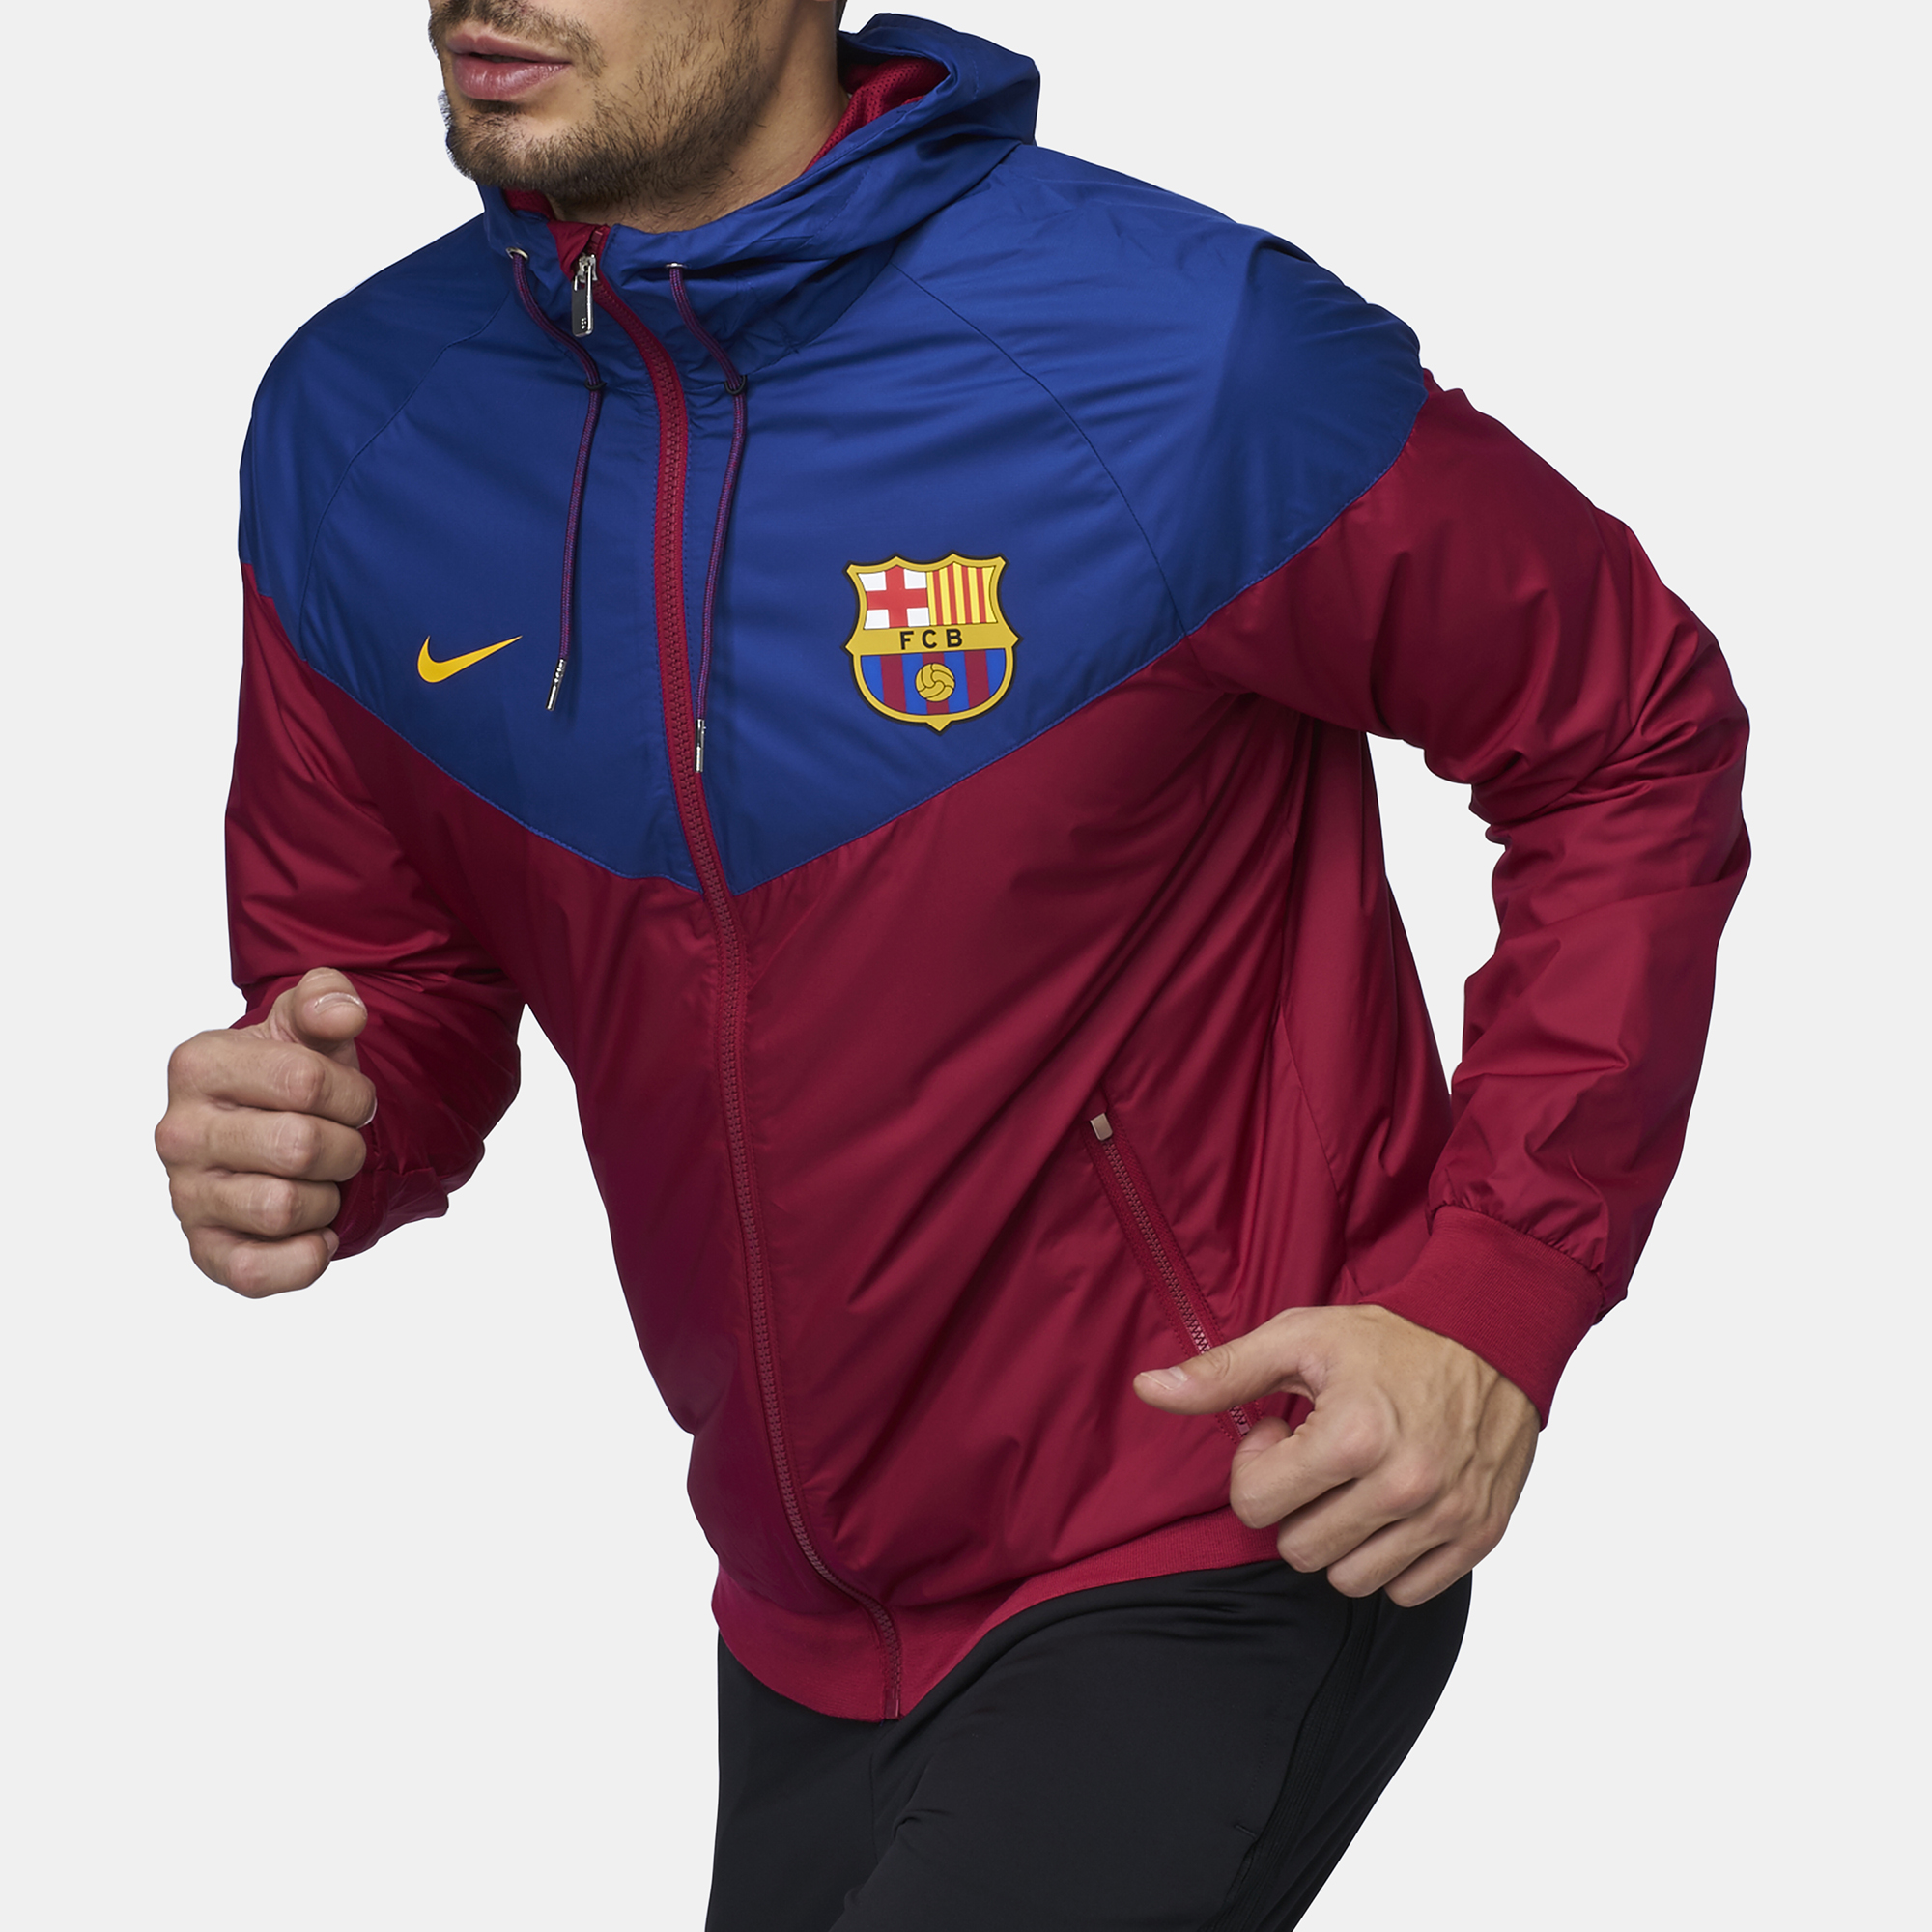 2ae9088ea Shop 41 Nike FC Barcelona Authentic Windrunner Jacket - 2017 18 for ...